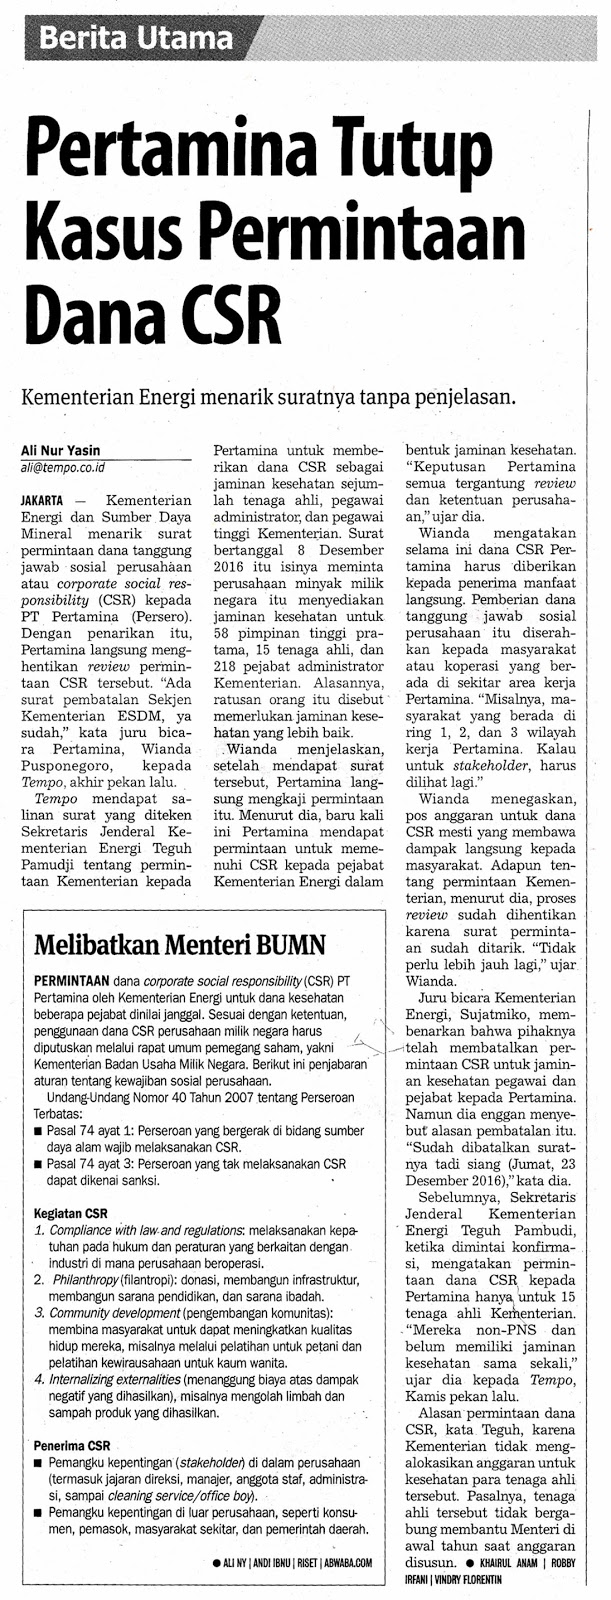 Pertamina Csr Case Cover Solicitation Of Funds Media